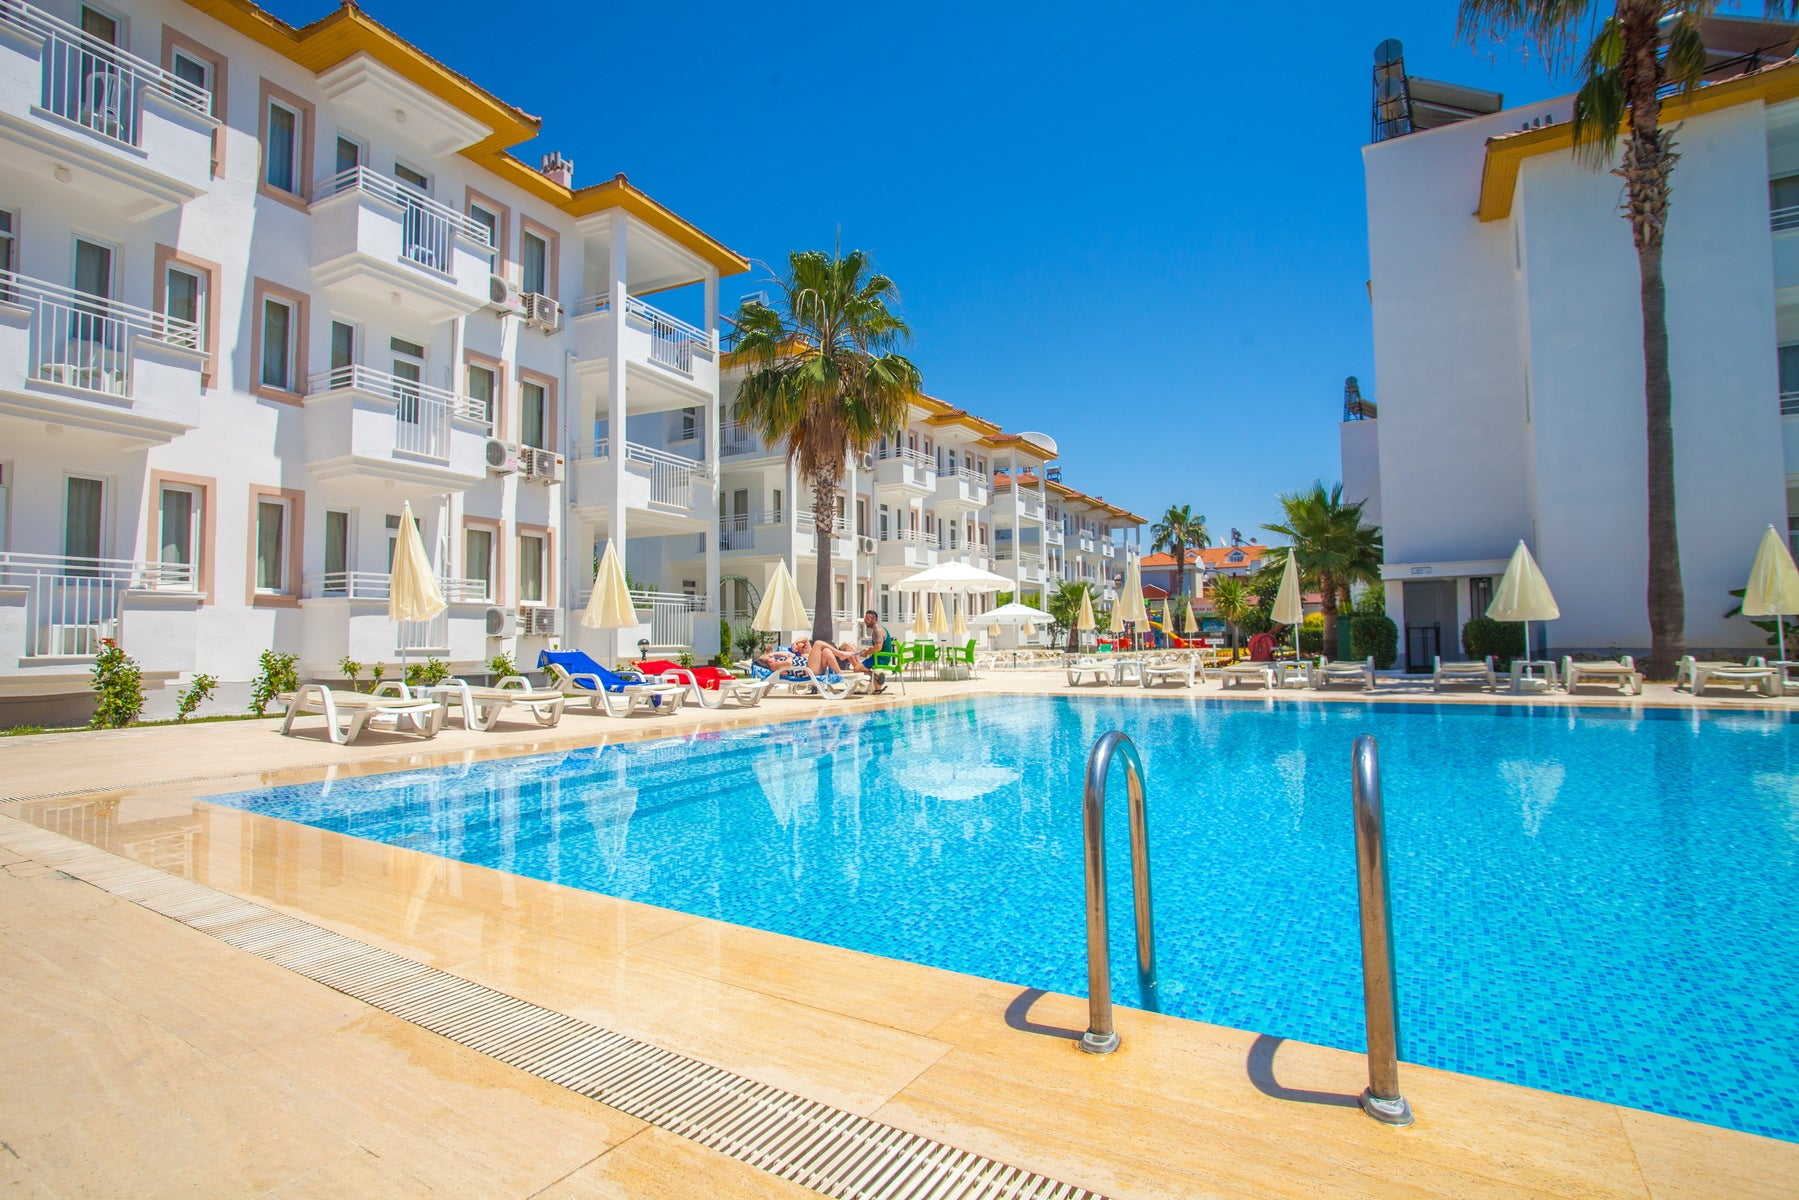 Genial Dream Of Side (Ex. Anthos Garden Apartments Hotel) In Side, Turkey |  Holidays From £287pp | Loveholidays